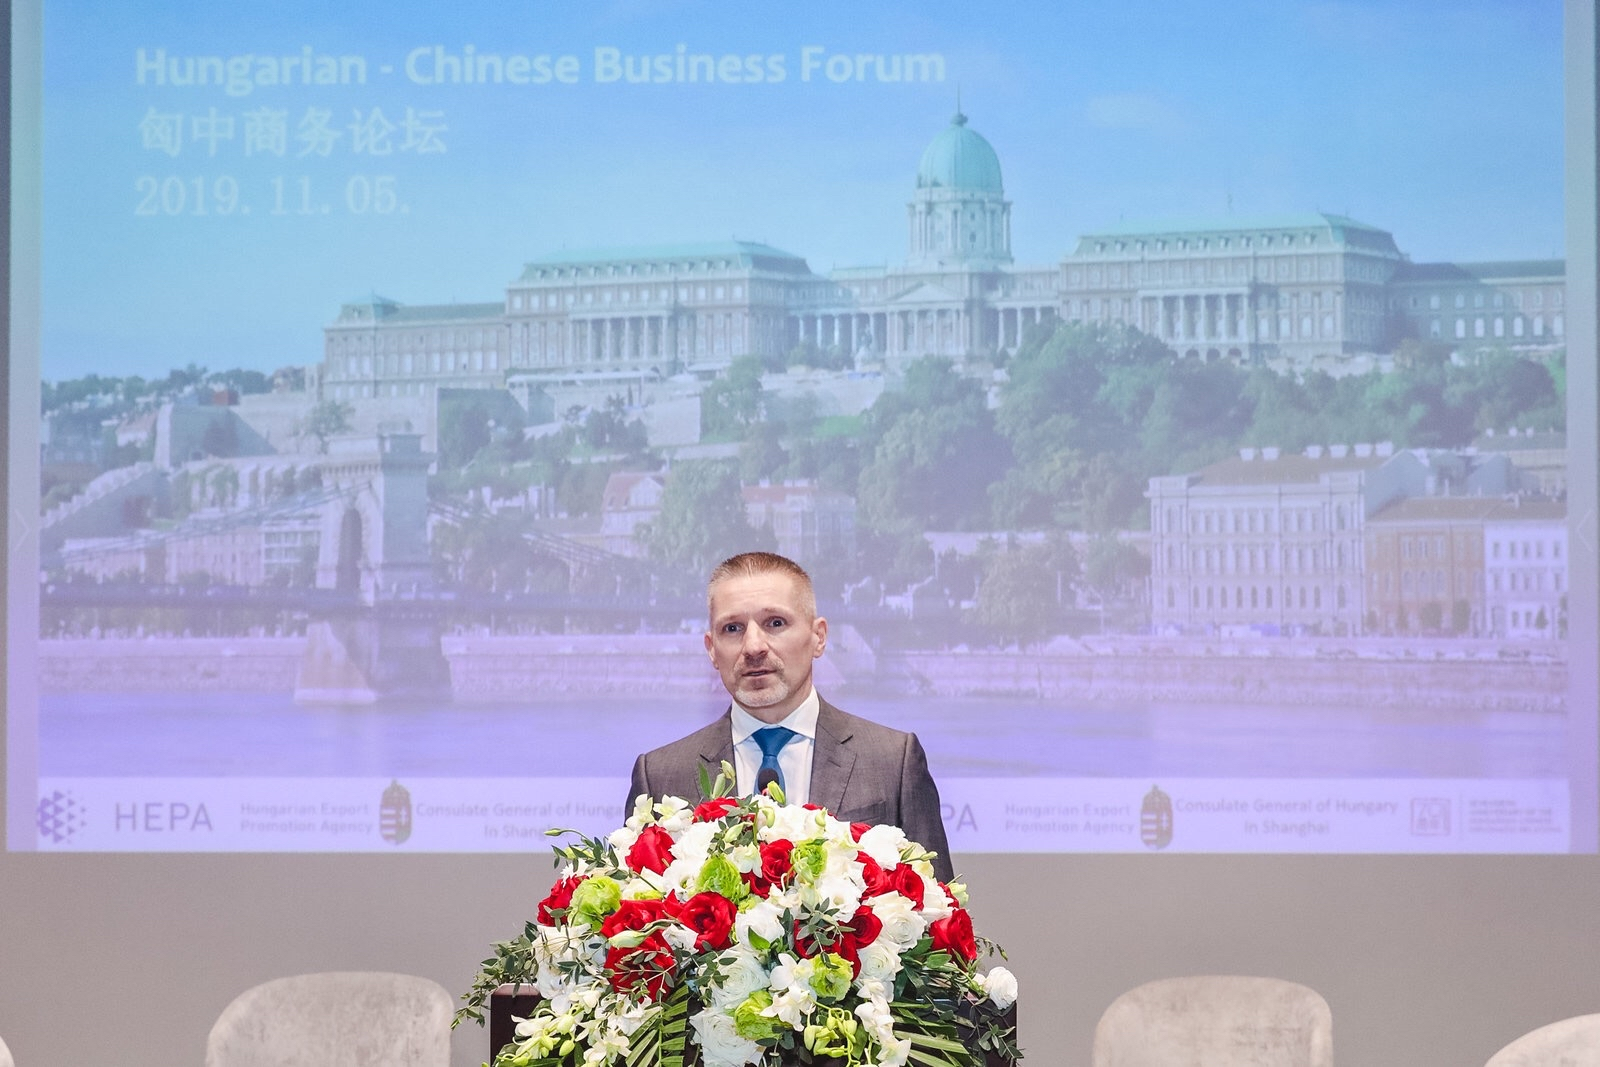 Hungary-China Business Forum Gabor Holch